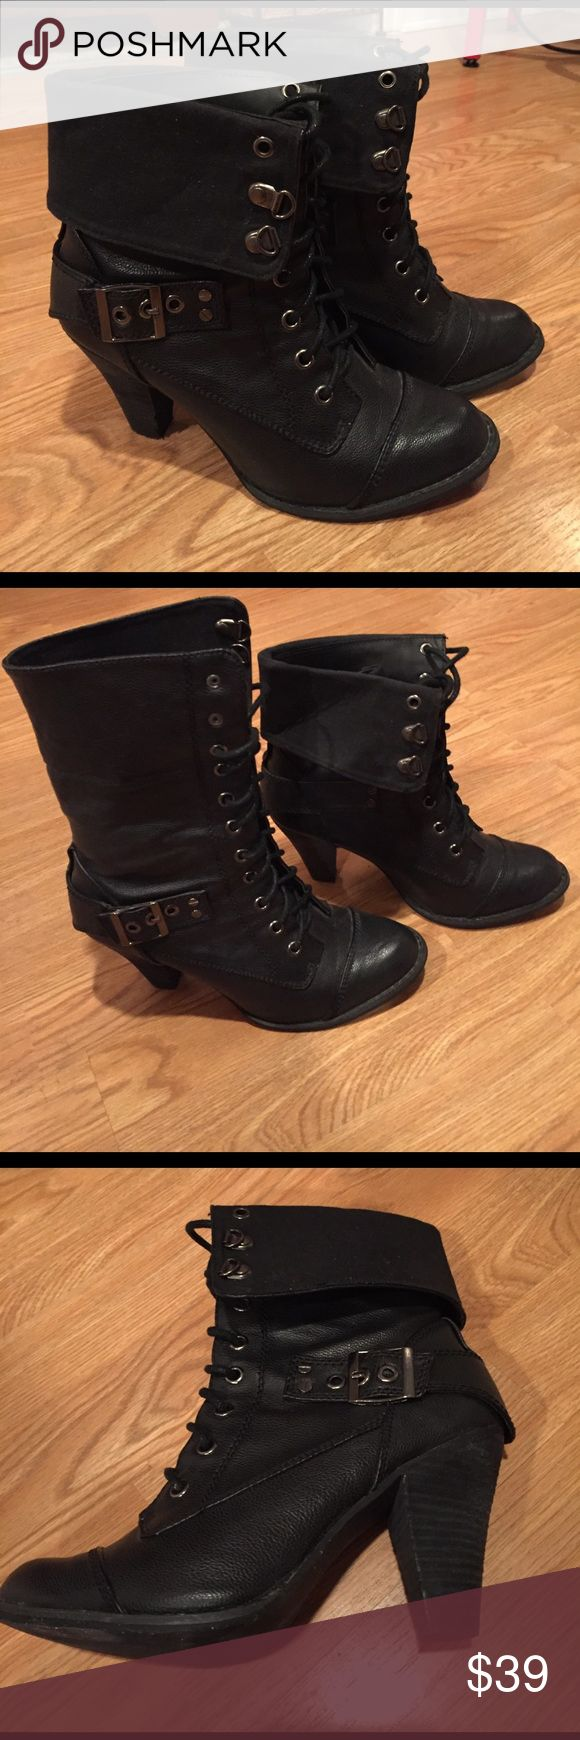 """Sassy lace-up fold over boots These sassy lace-up fold over boots were purchased from Victoria's Secret. The brand is Not Rated. These can be worn folded over or tall and all the way laced up. I wore these twice and they were surprisingly comfortable with a 3"""" heel with good balance. Not Rated Shoes Lace Up Boots"""